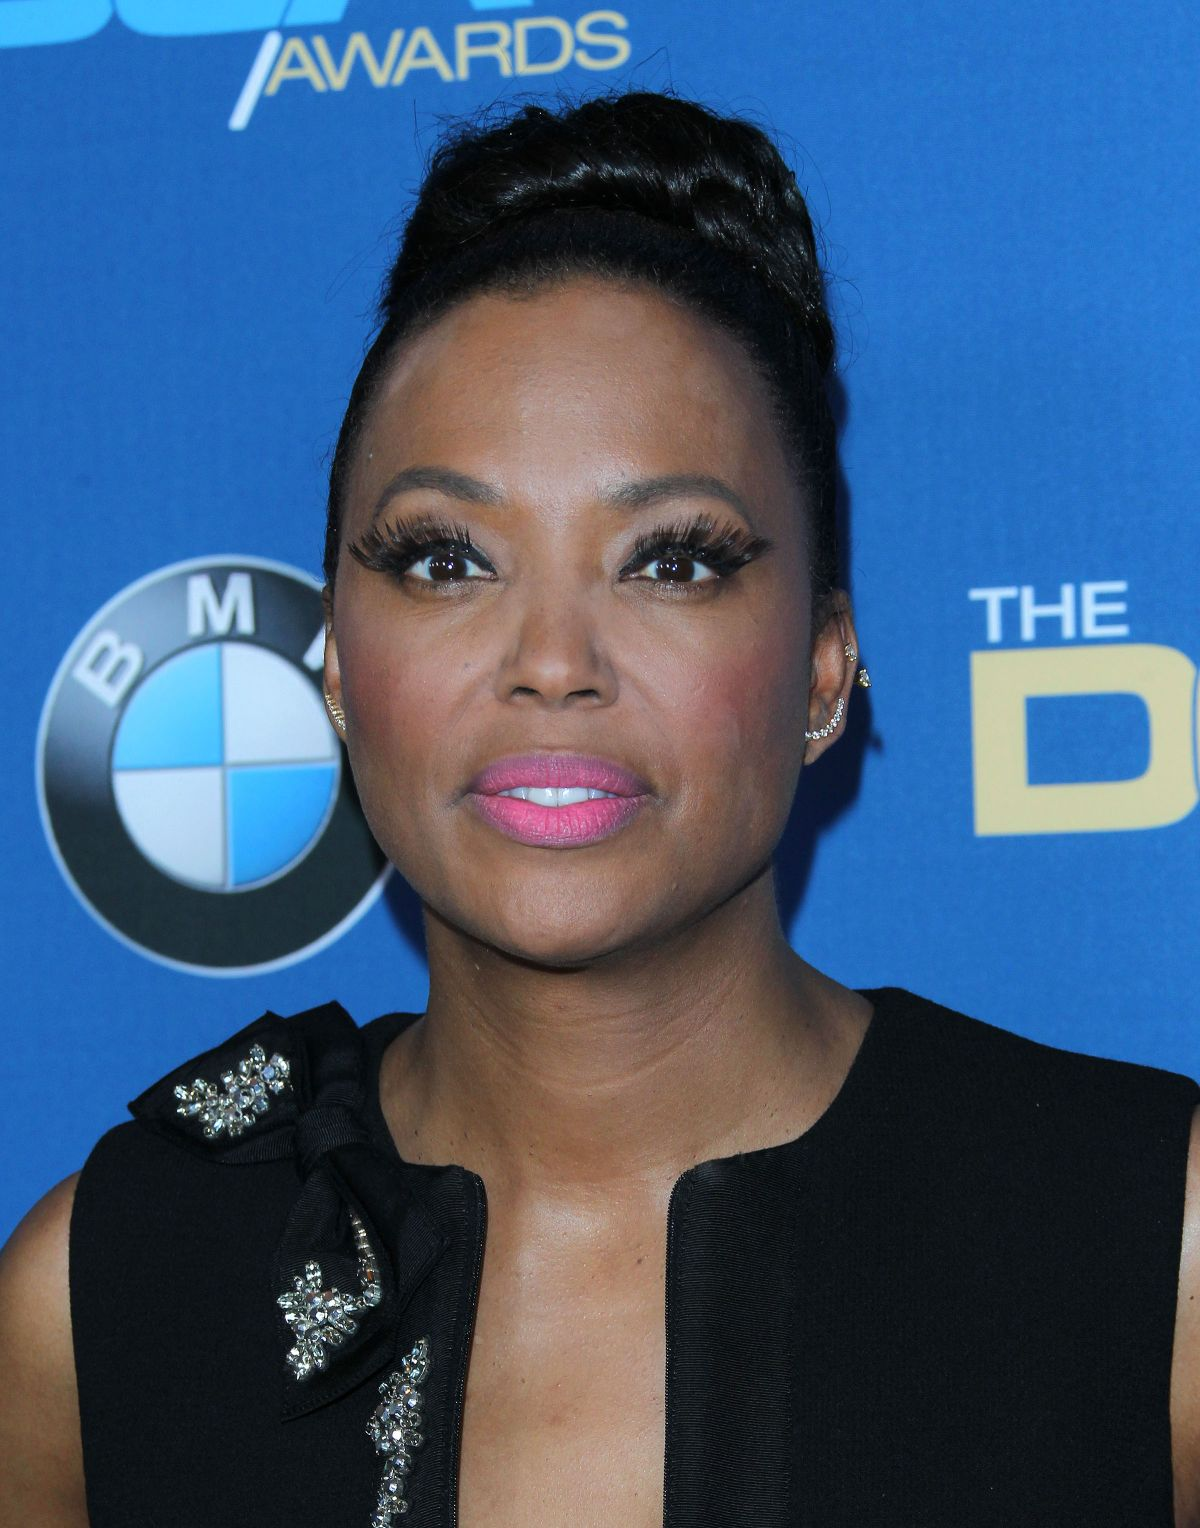 aisha-tyler-at-69th-annual-directors-guild-of-america-awards-in-beverly-hills-02-04-2017_8.jpg